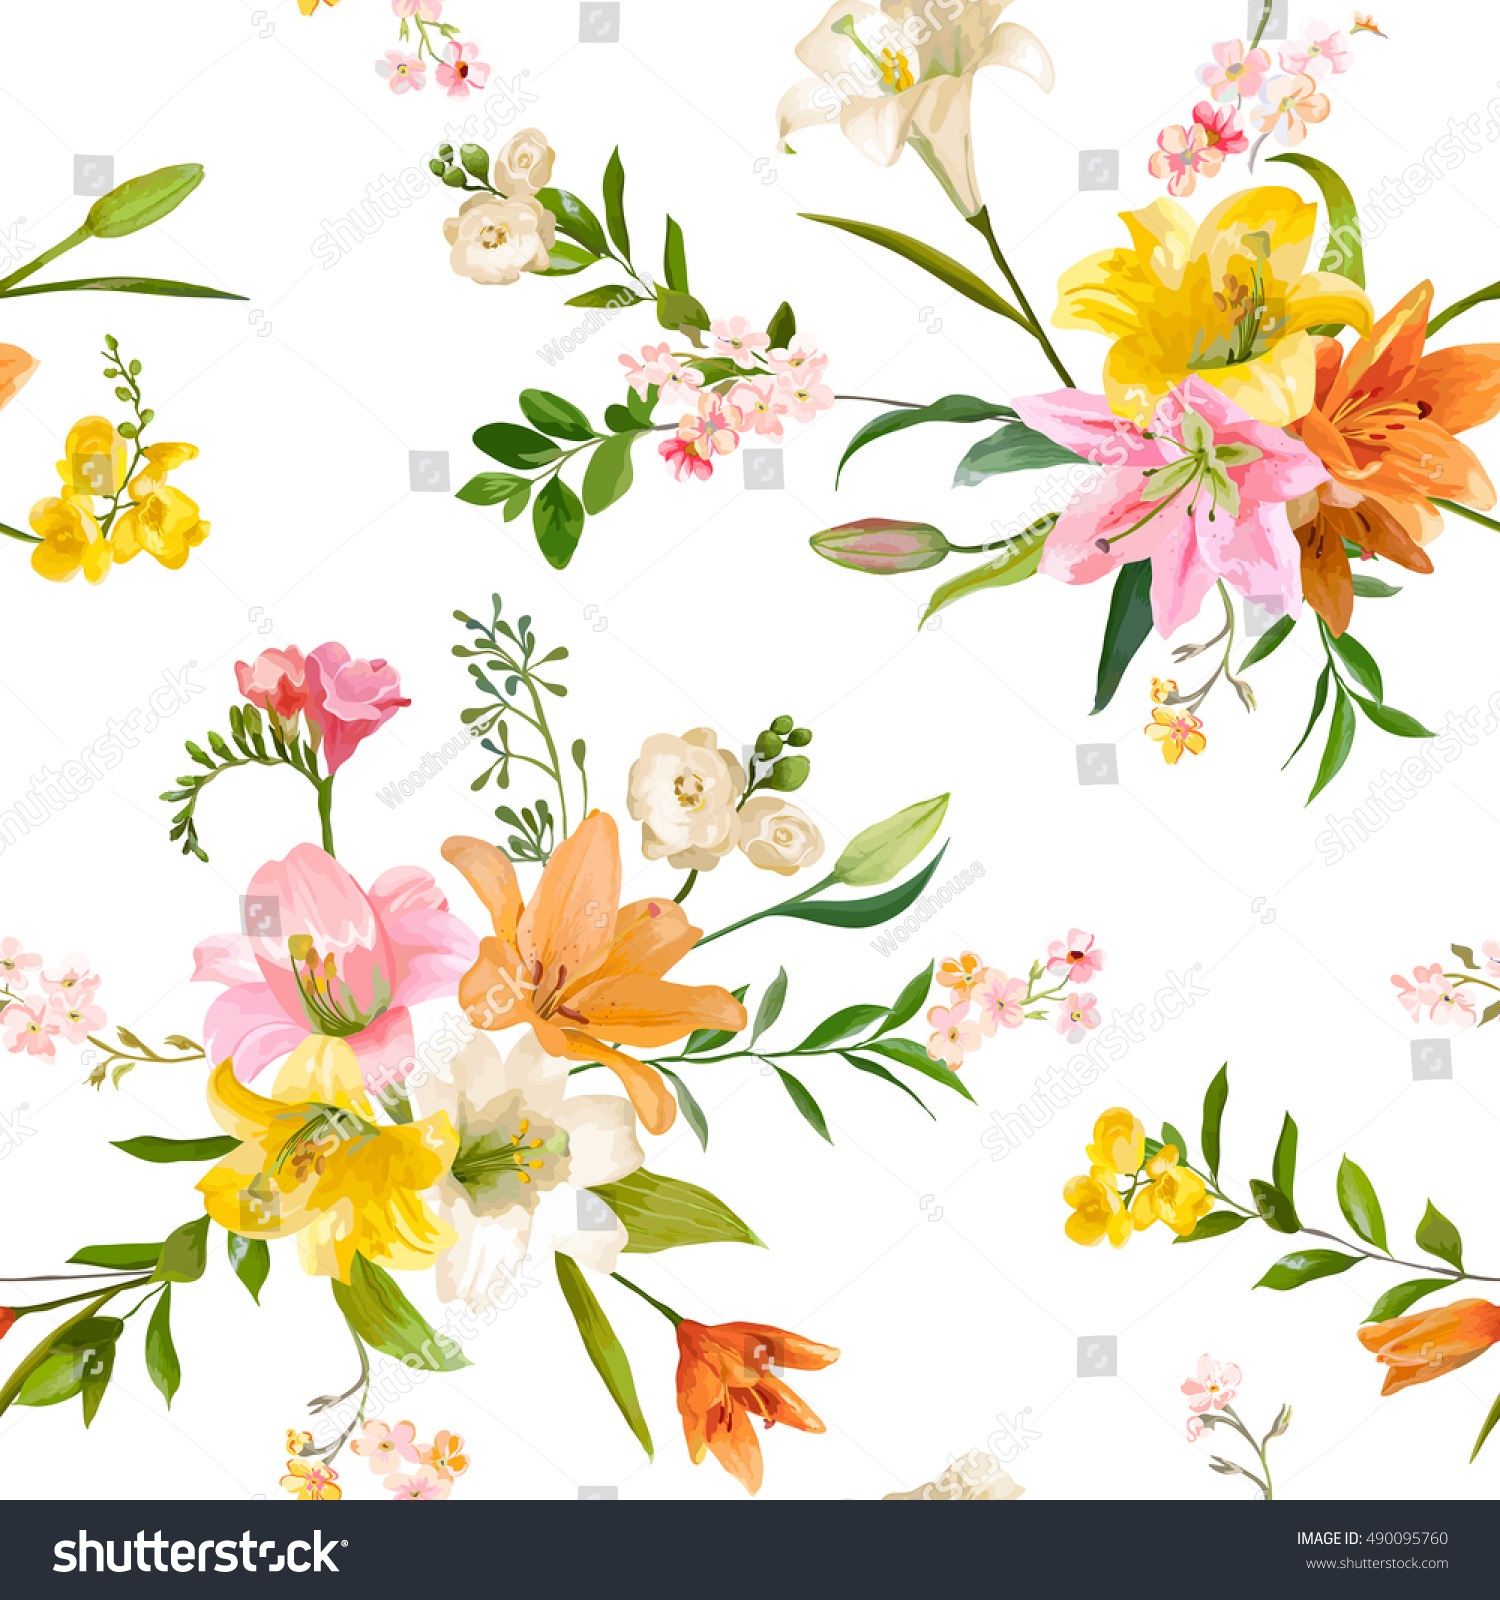 Vintage spring flowers backgrounds seamless floral stock vector hd vintage spring flowers backgrounds seamless floral lily pattern in vector mightylinksfo